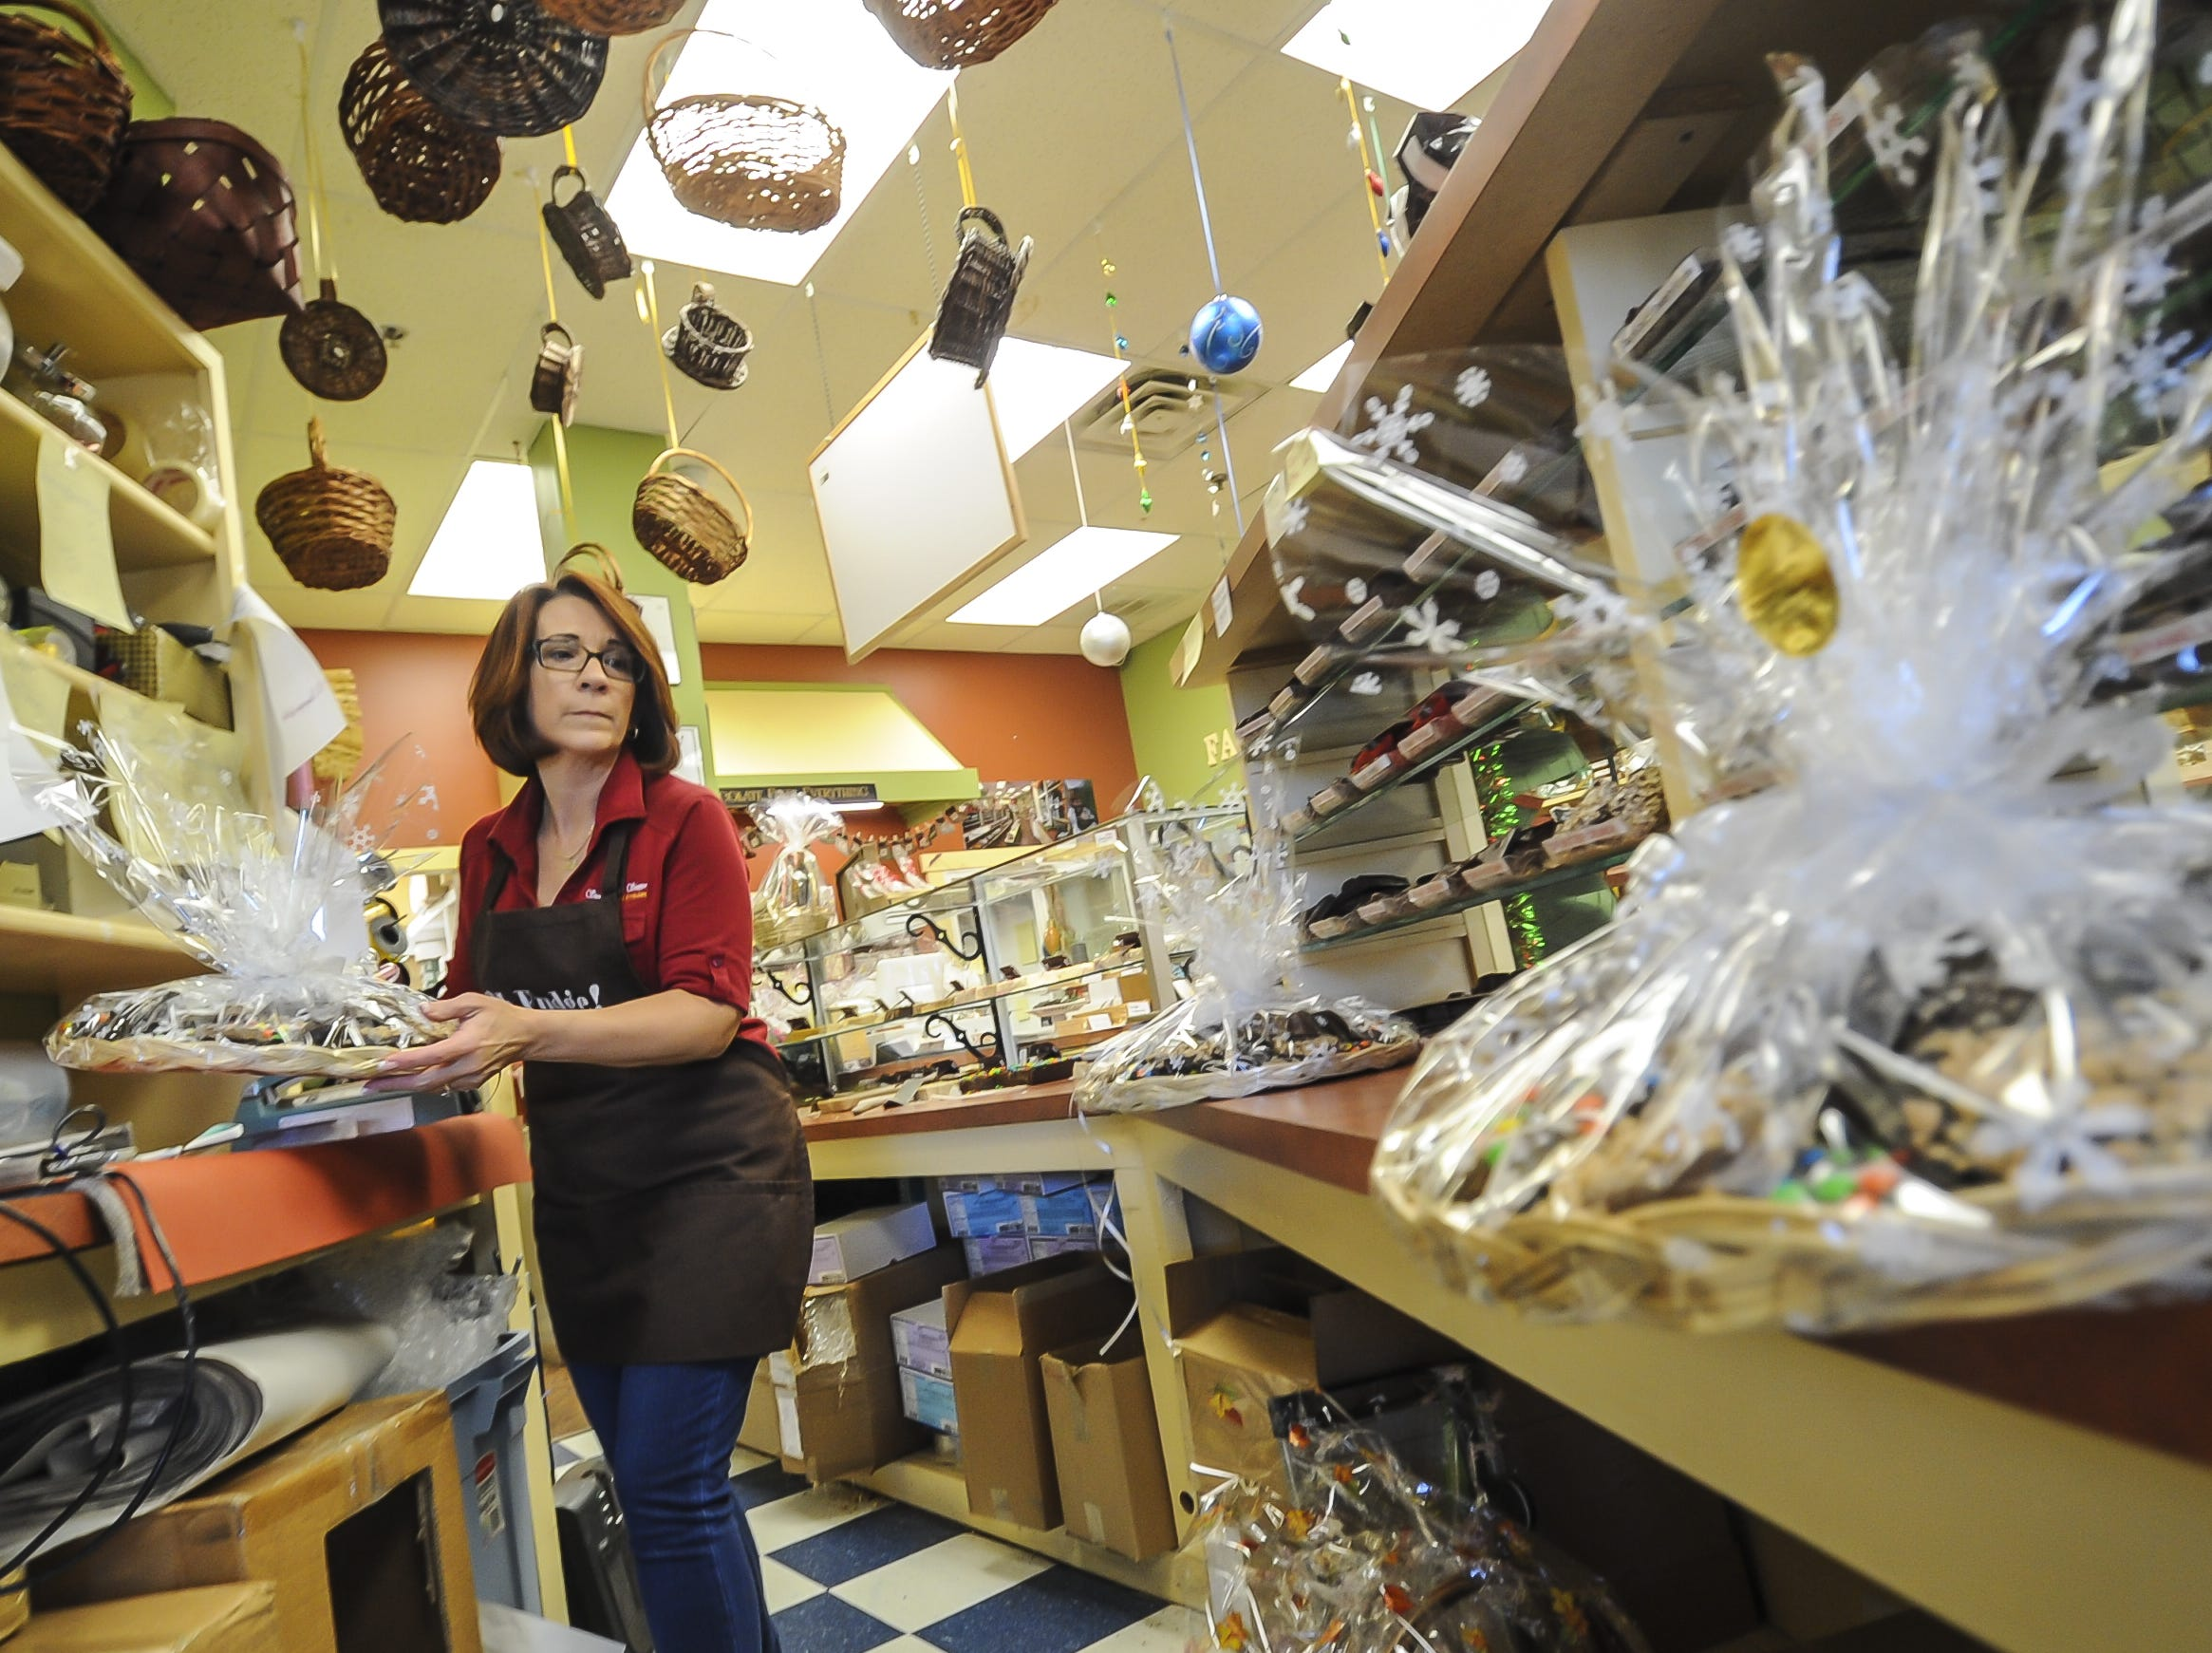 Susan Hordych owner of Suzi's Sweet Shoppe, a Middletown family-owned business, prepares platters. The family-owned business offers hand-dipped chocolates, gift baskets, party favors, and homemade fudge.